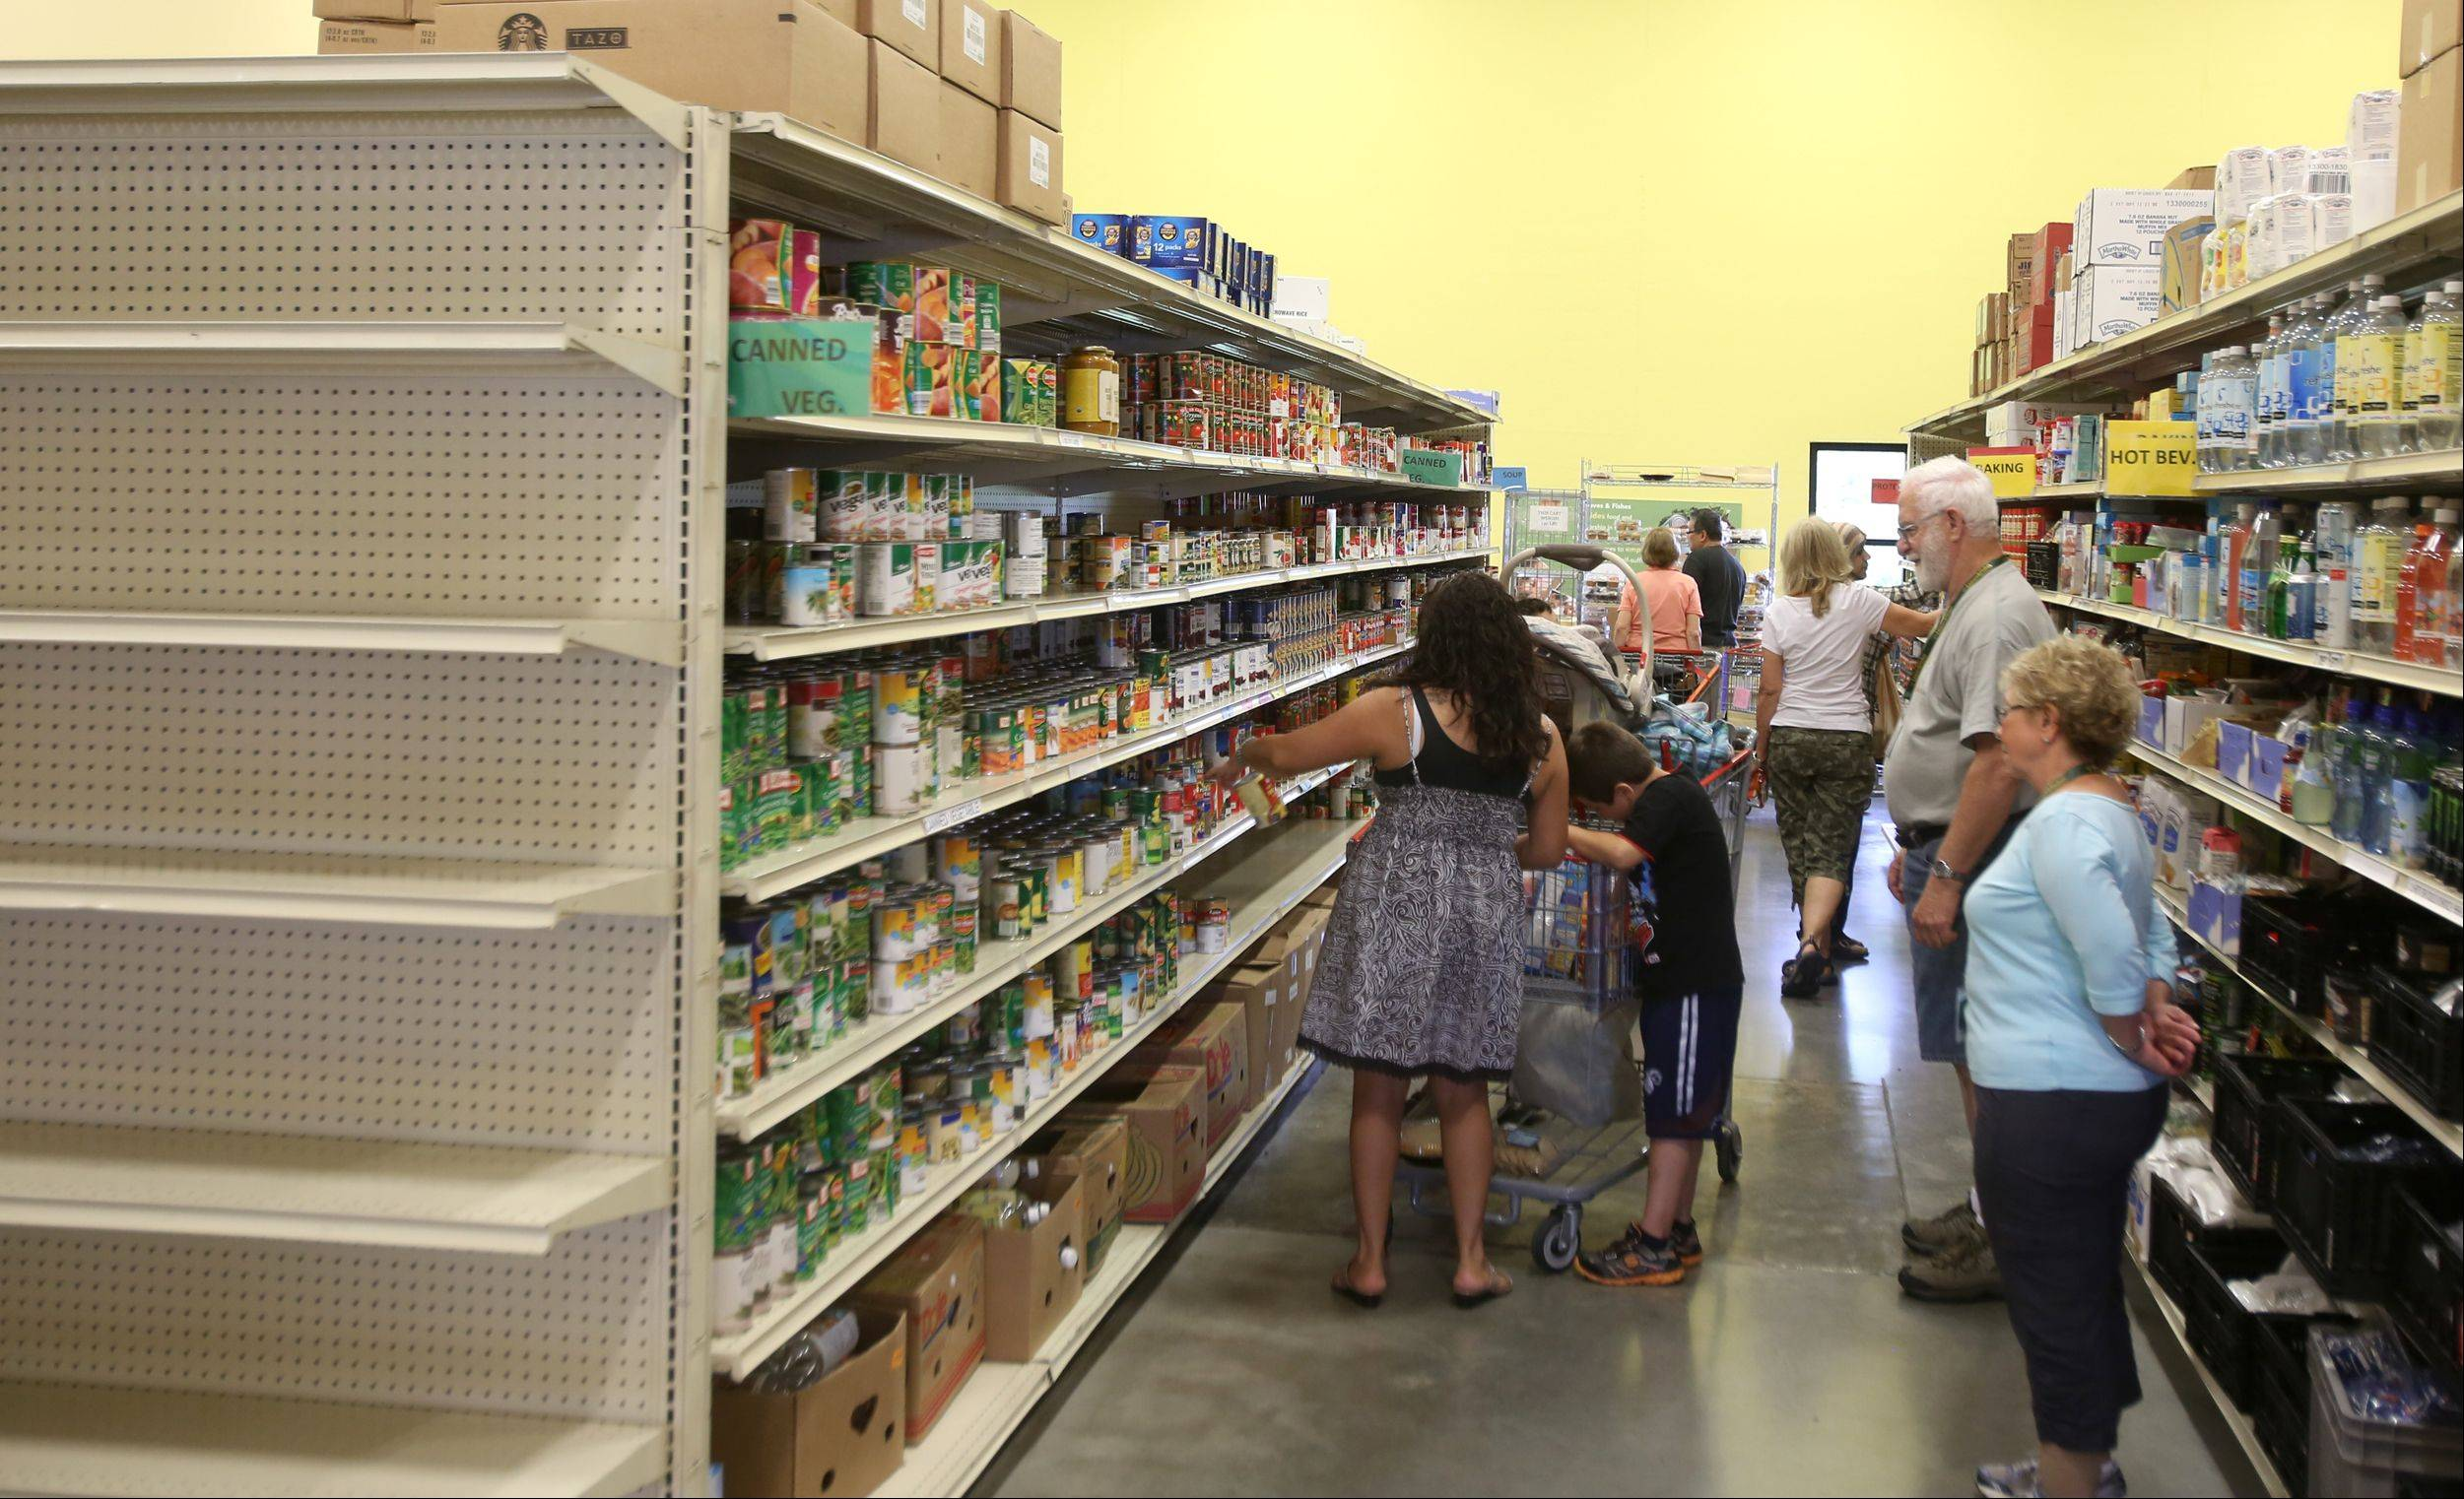 Volunteers help pantry visitors shop for groceries Tuesday at Loaves & Fishes Community Pantry in Naperville.